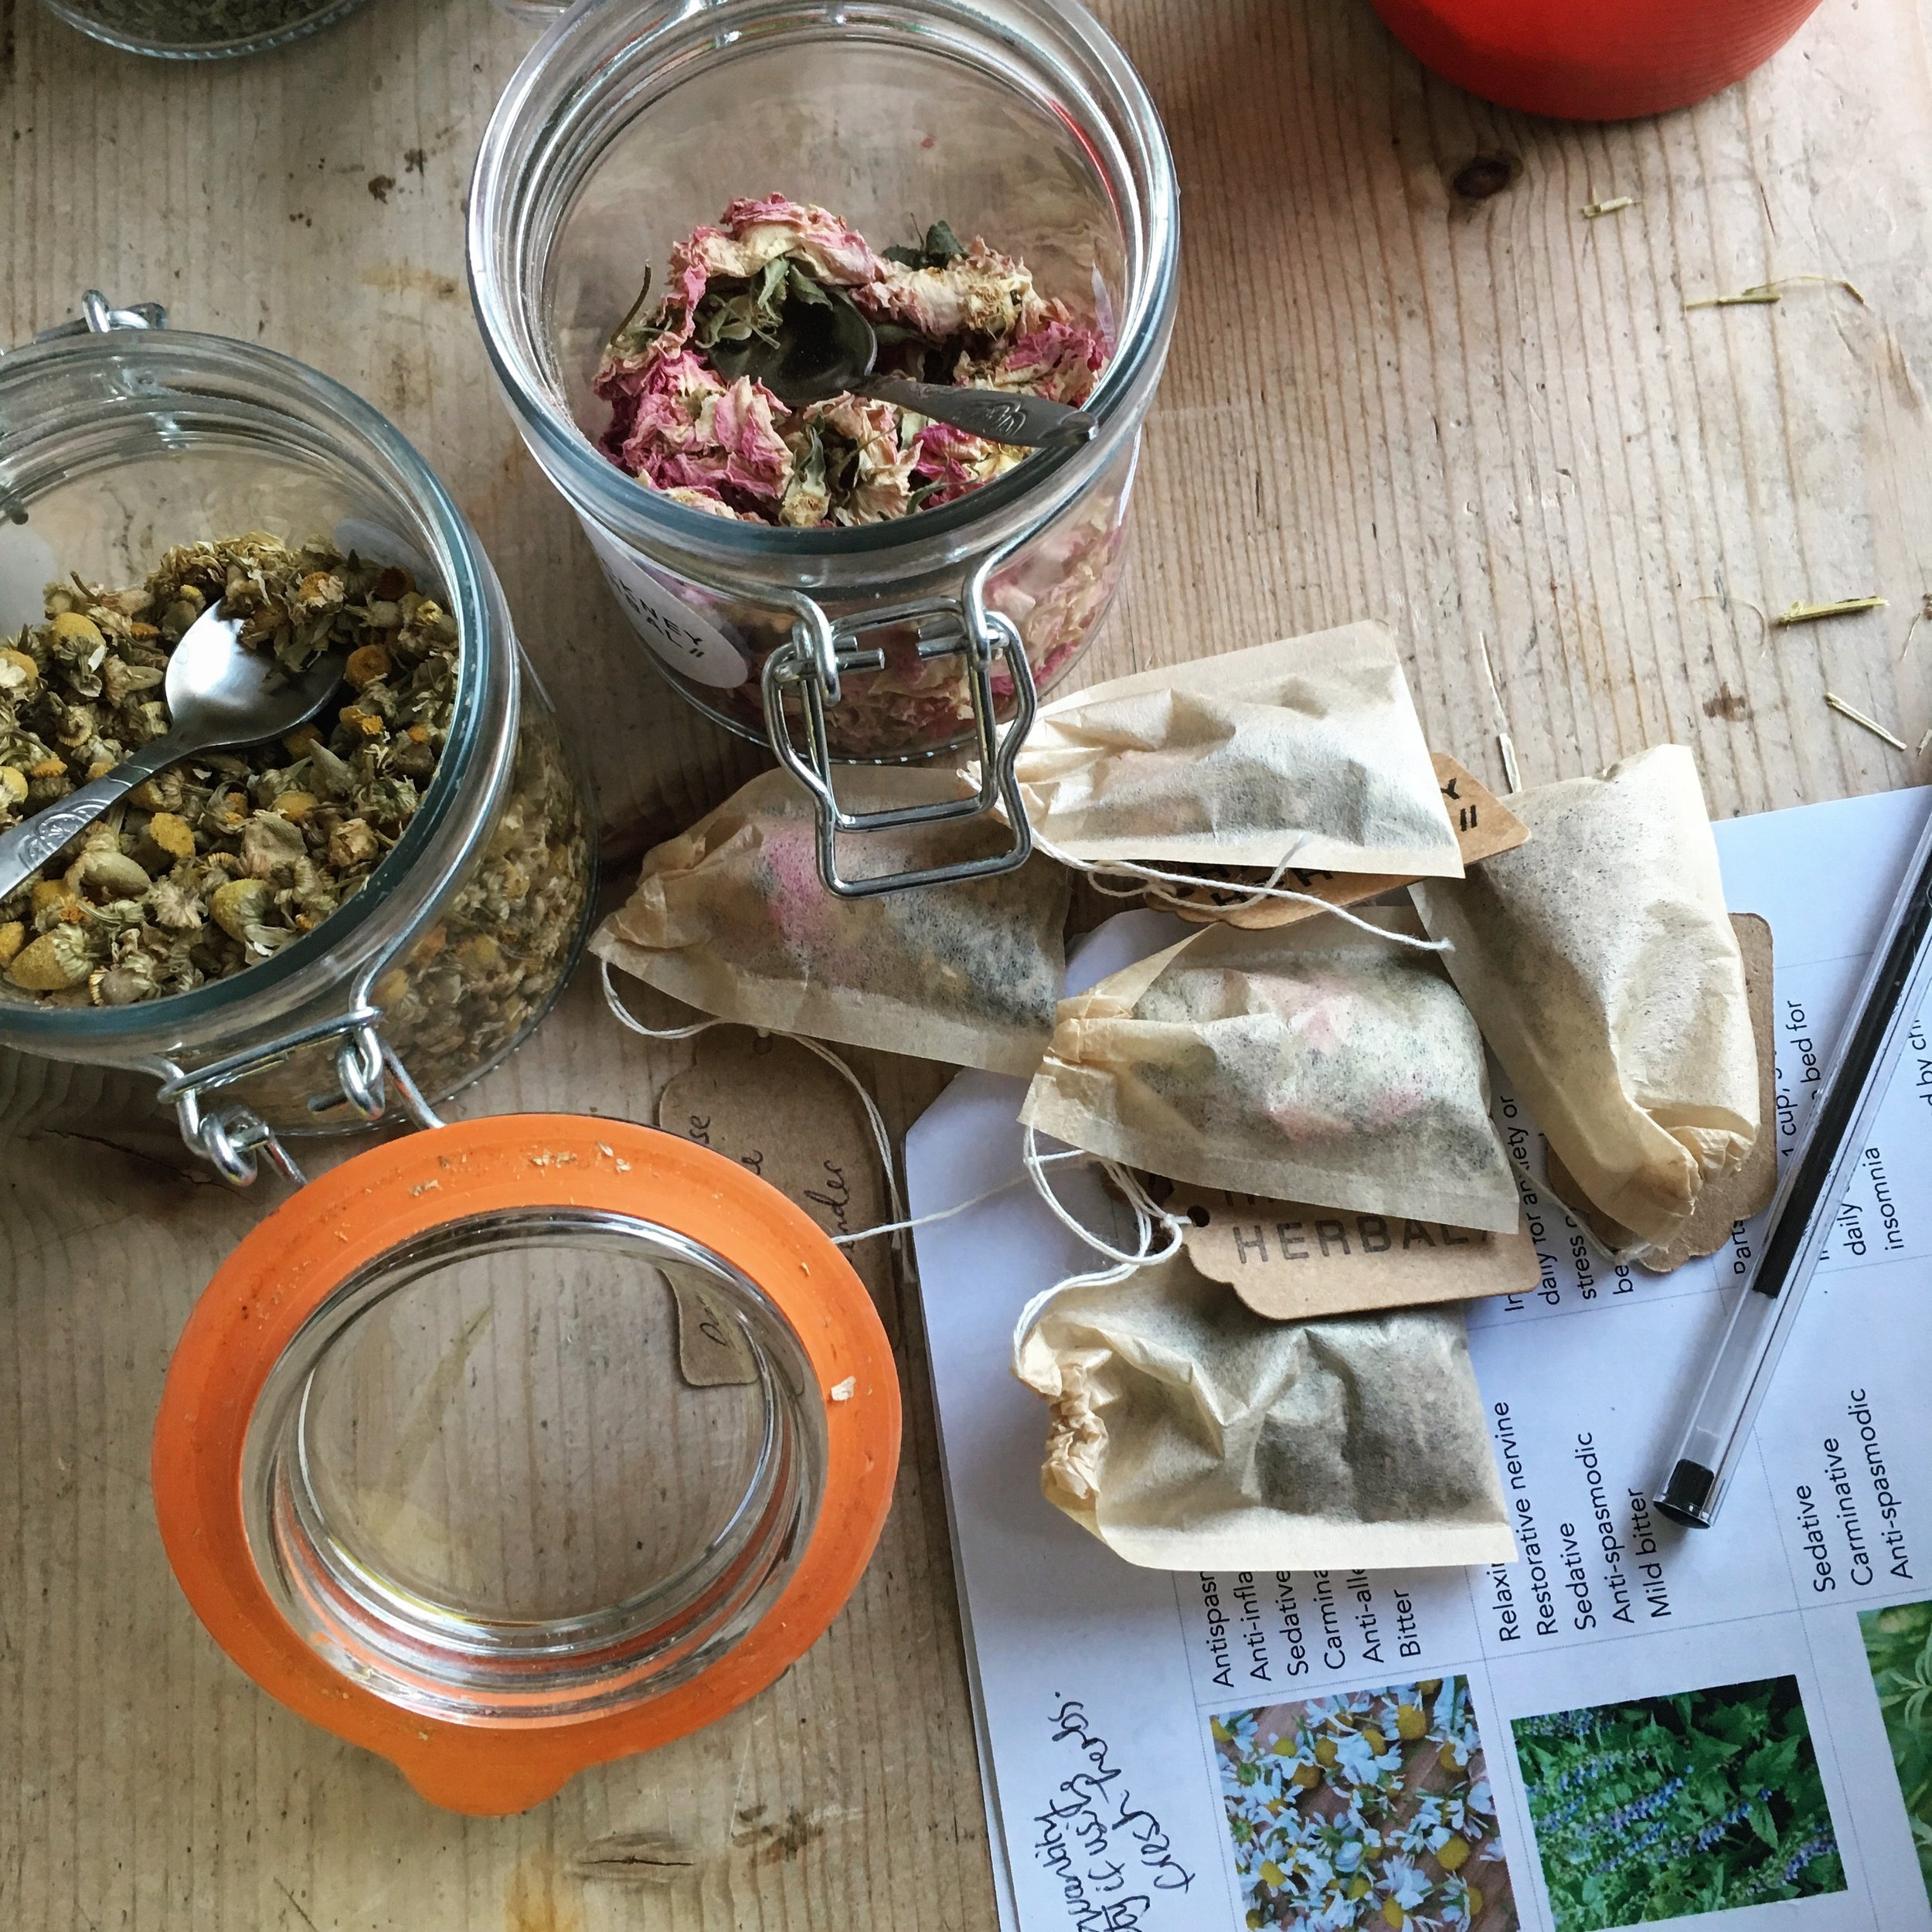 Hackney Herbal | Herbal Tea Bags and Herb Jar.jpg